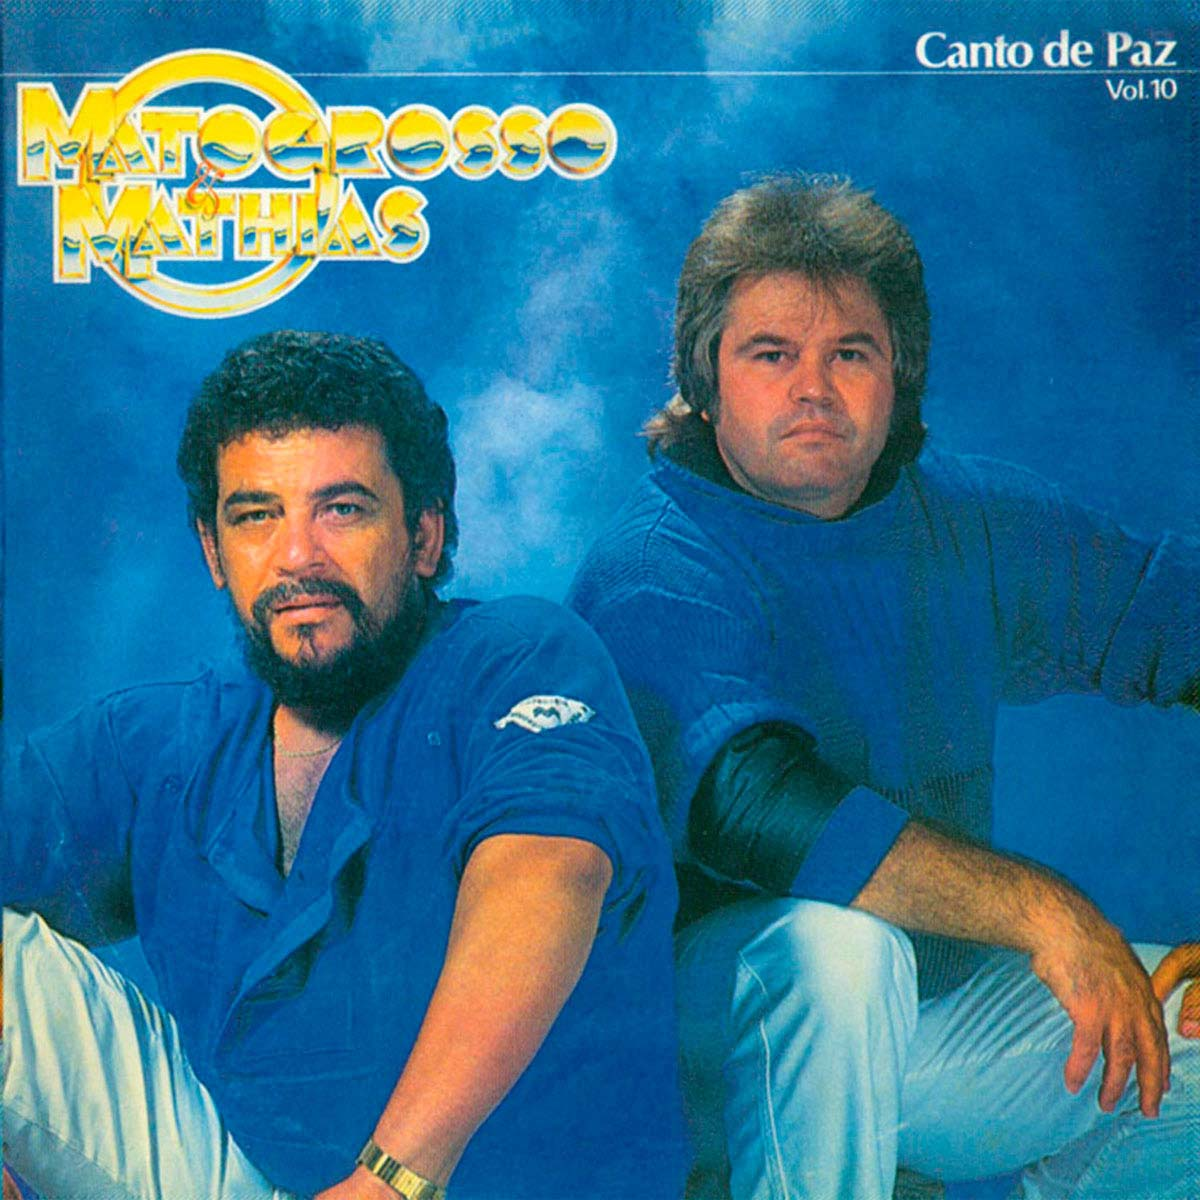 CD Matogrosso & Mathias Canto de Paz Vol. 10